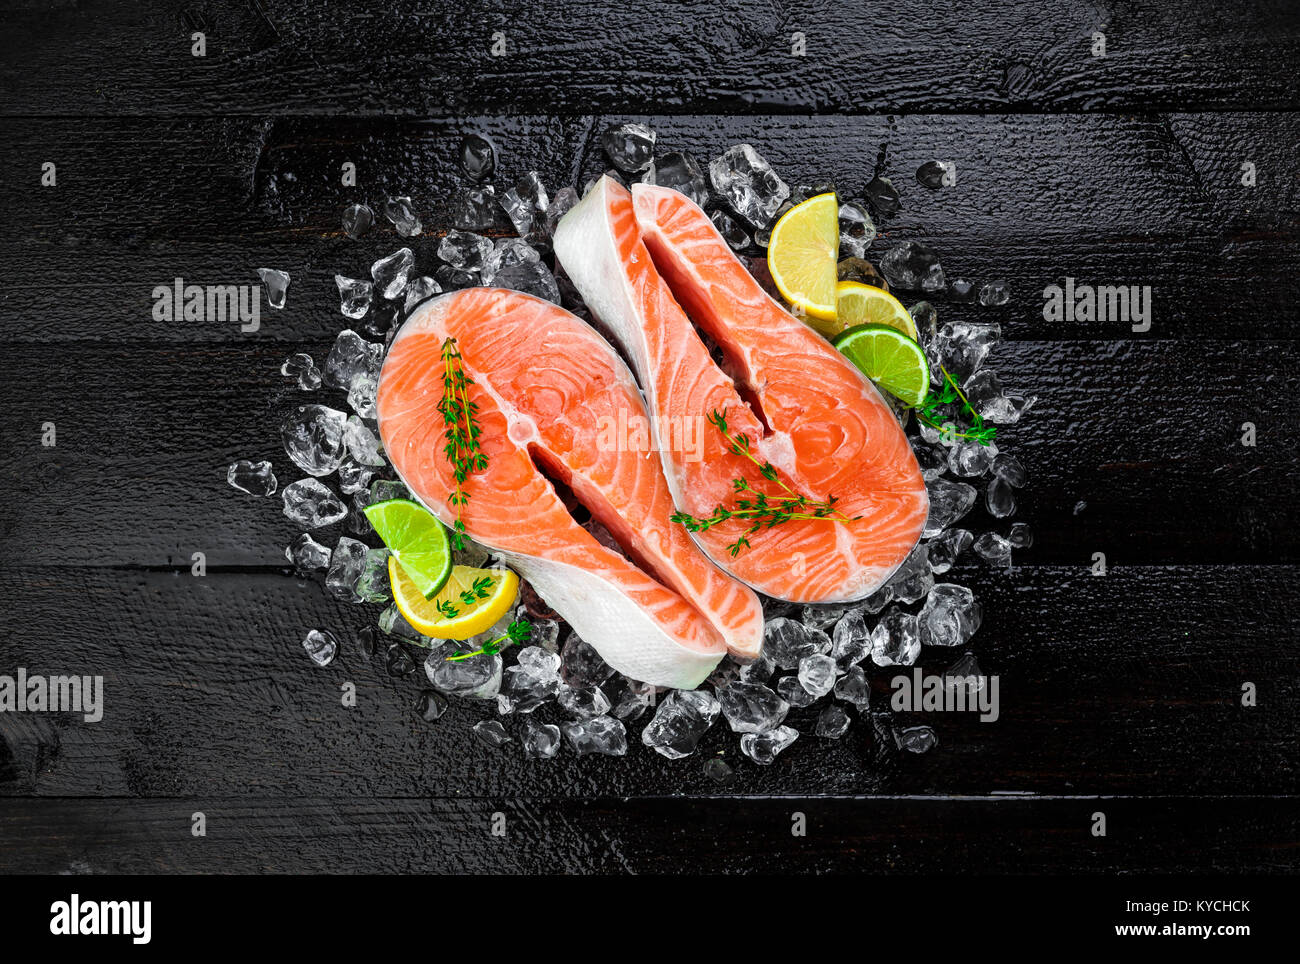 Salmon steaks on black wooden table background - Stock Image